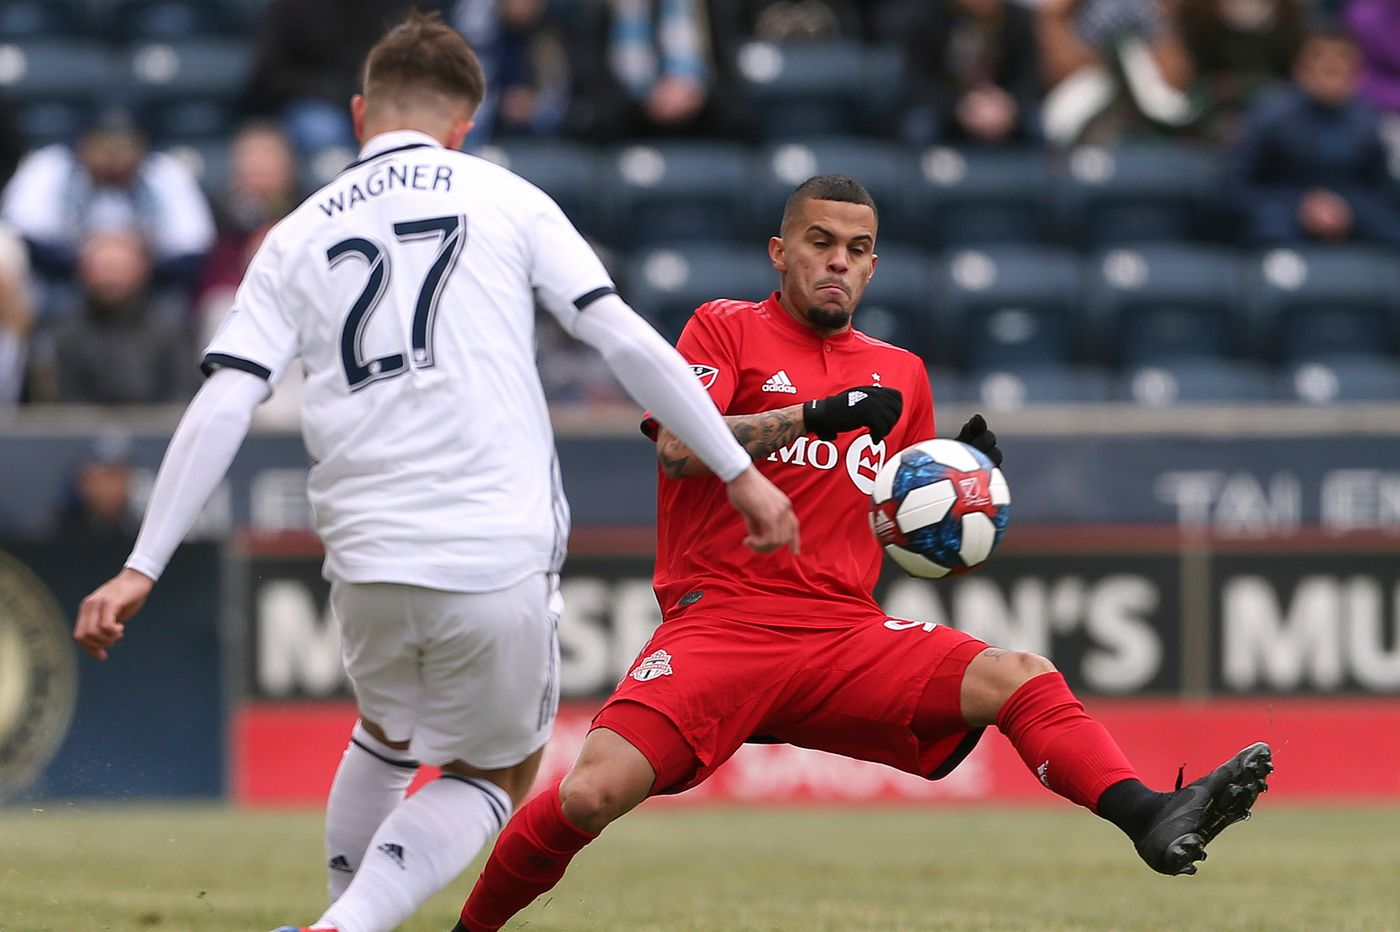 Union's Kai Wagner already showing why Ernst Tanner bet on him